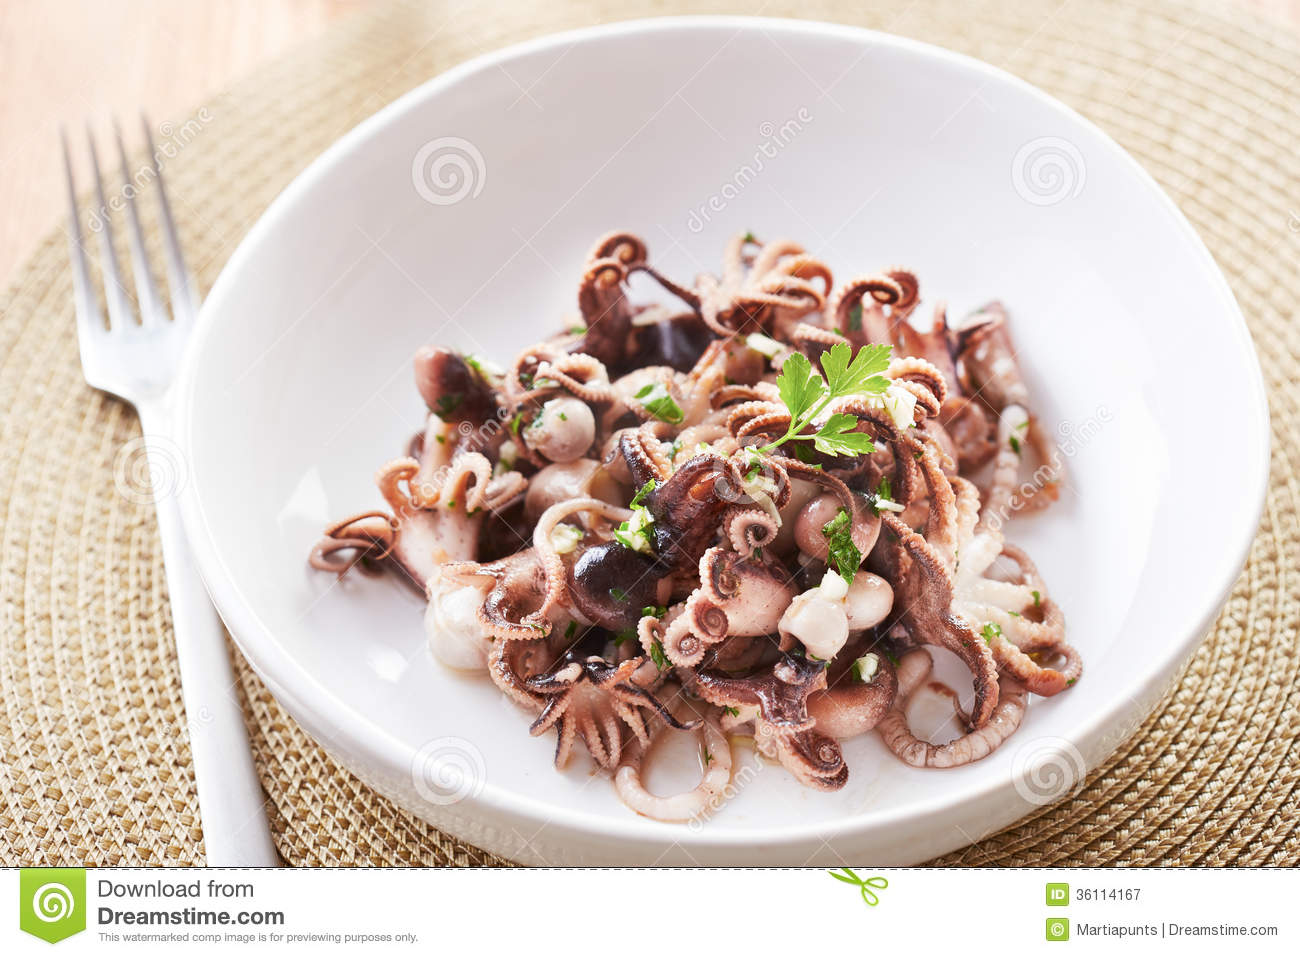 sauteed calamari with parsley and garlic sauteed calamari with parsley ...